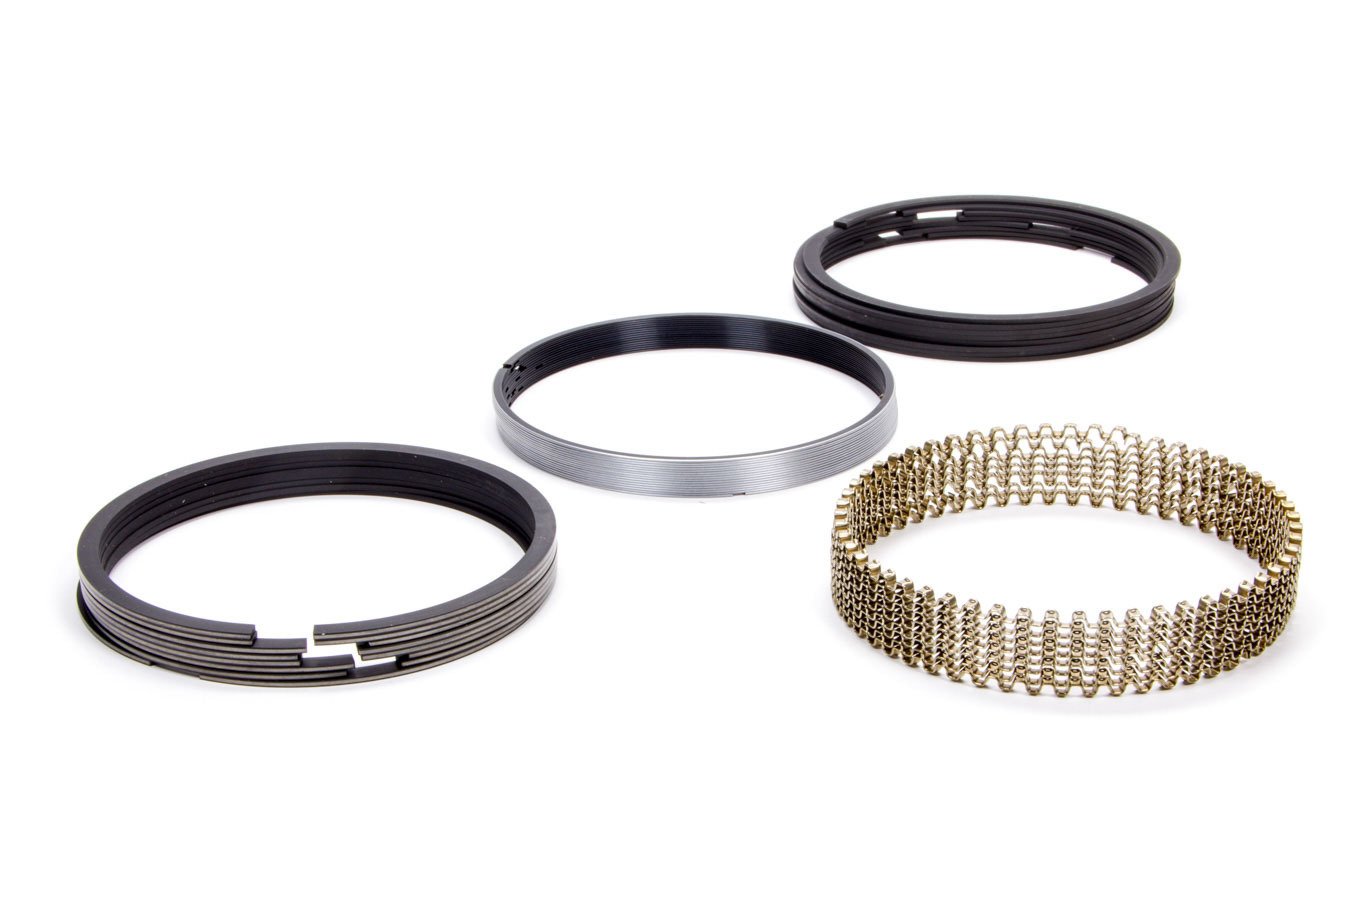 Hastings 2M4346 Piston Rings, 4.000 in Bore, 1.5 x 1.5 x 4.0 mm Thick, Standard Tension, Moly, 8 Cylinder, Kit